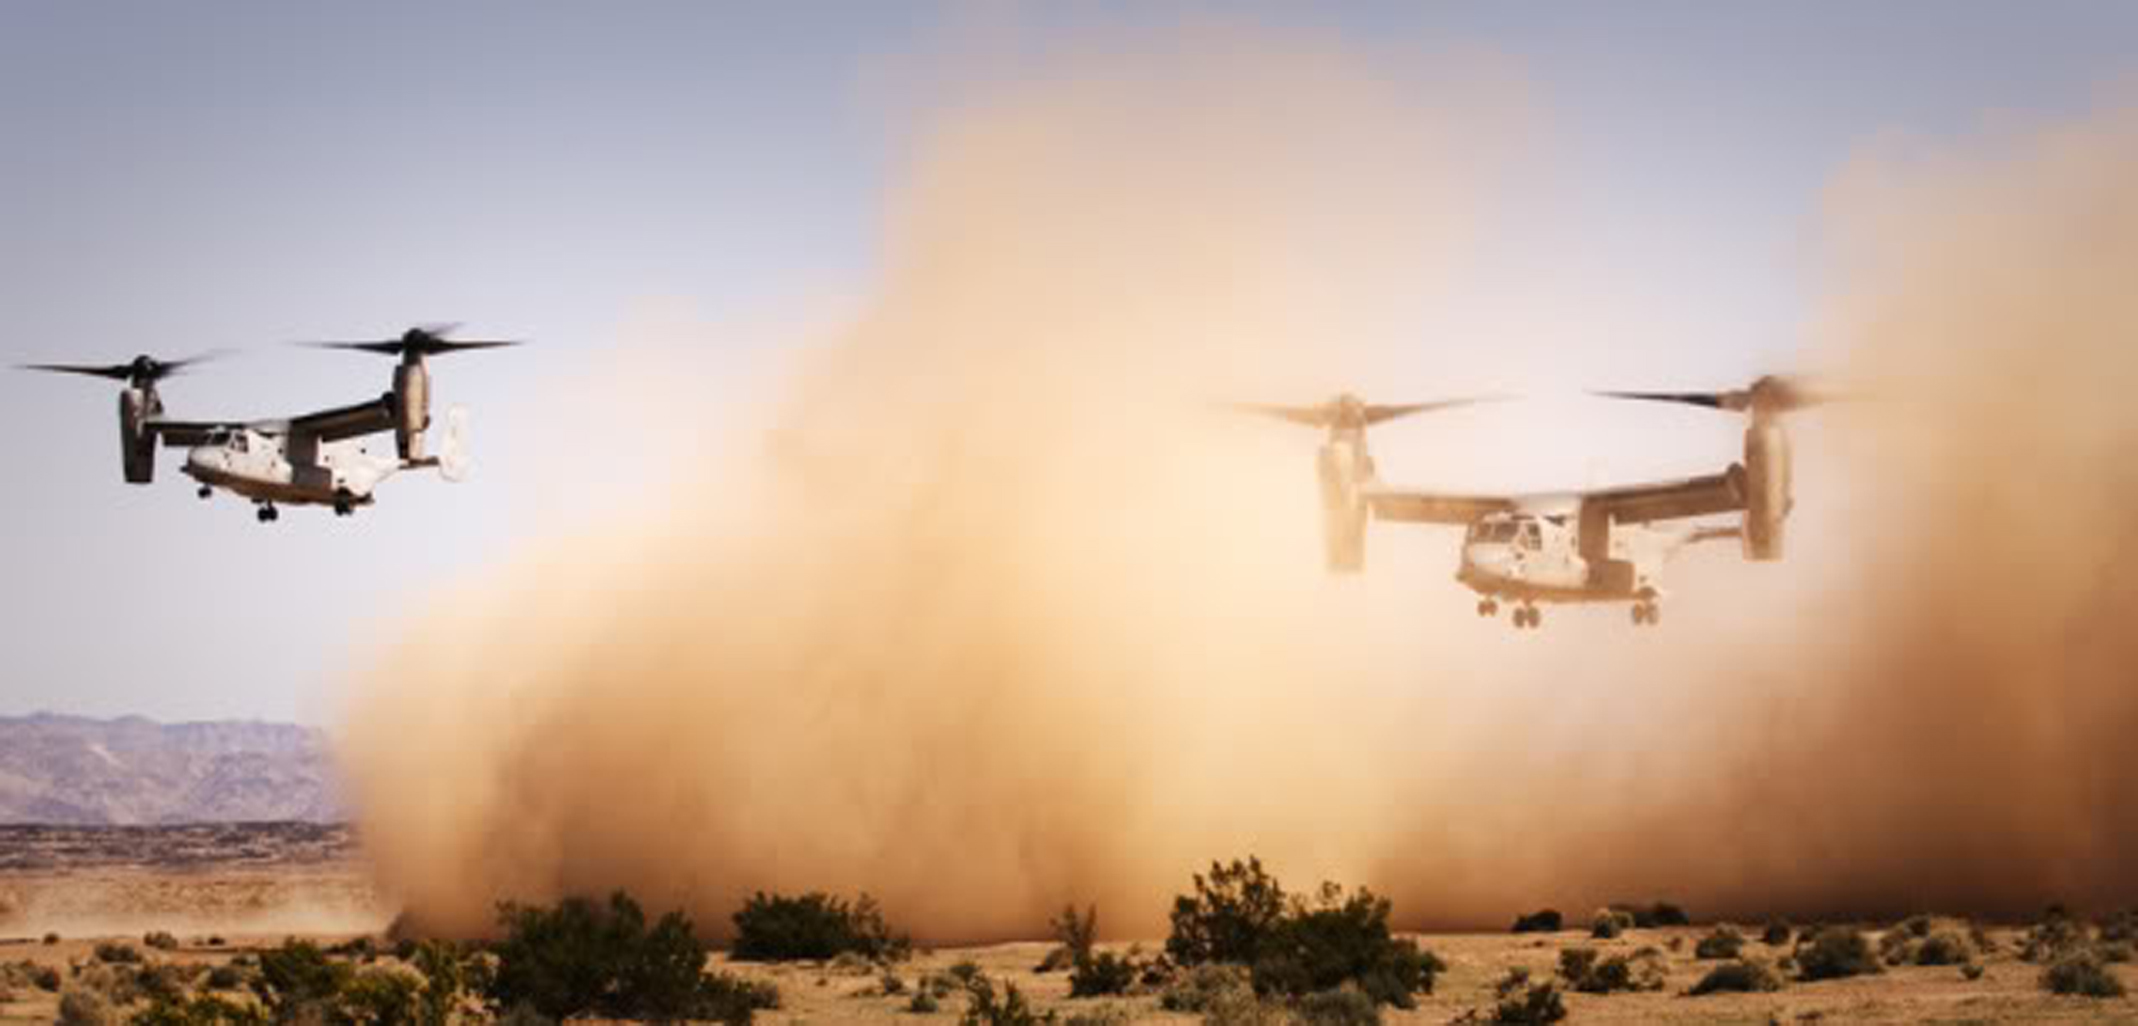 Aircraft military v-22 osprey HD Wallpaper